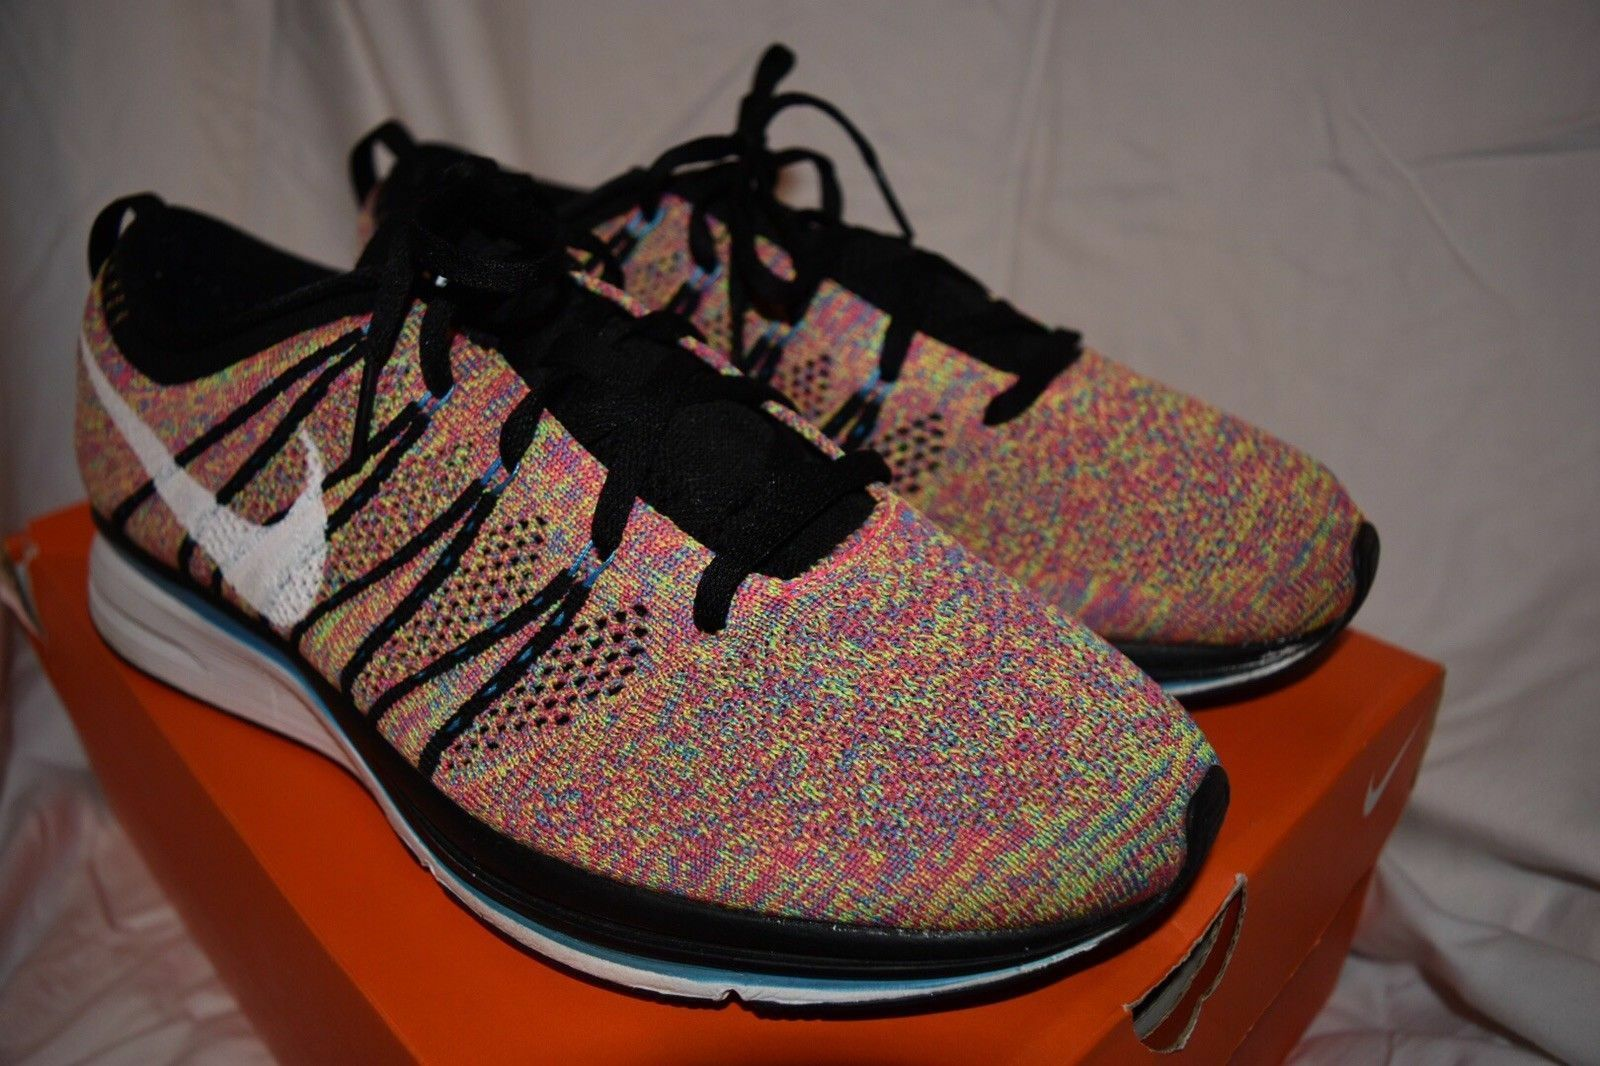 Nike Flyknit Trainer Trainer Trainer Multicolor 526628 011 Size 8 Racer yeezy nmd ultra boost pk 90b340